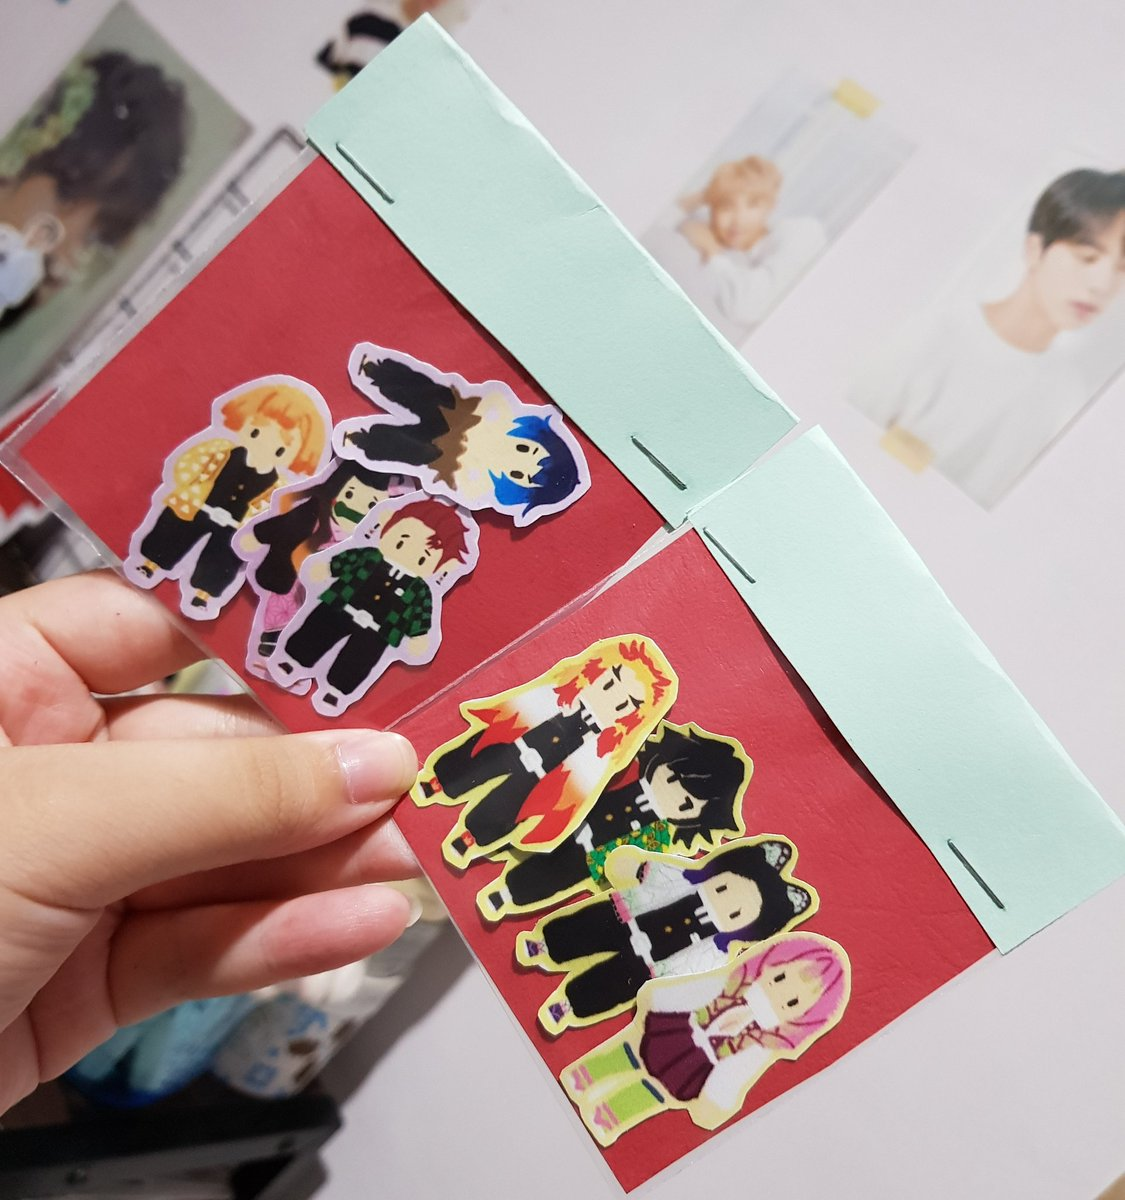 Hello everyone! The Visual Arts club will be having an art booth this coming U-days, we will be selling stickers, handmade bookmarks and more ♡ <br>http://pic.twitter.com/0io5qgY7BJ